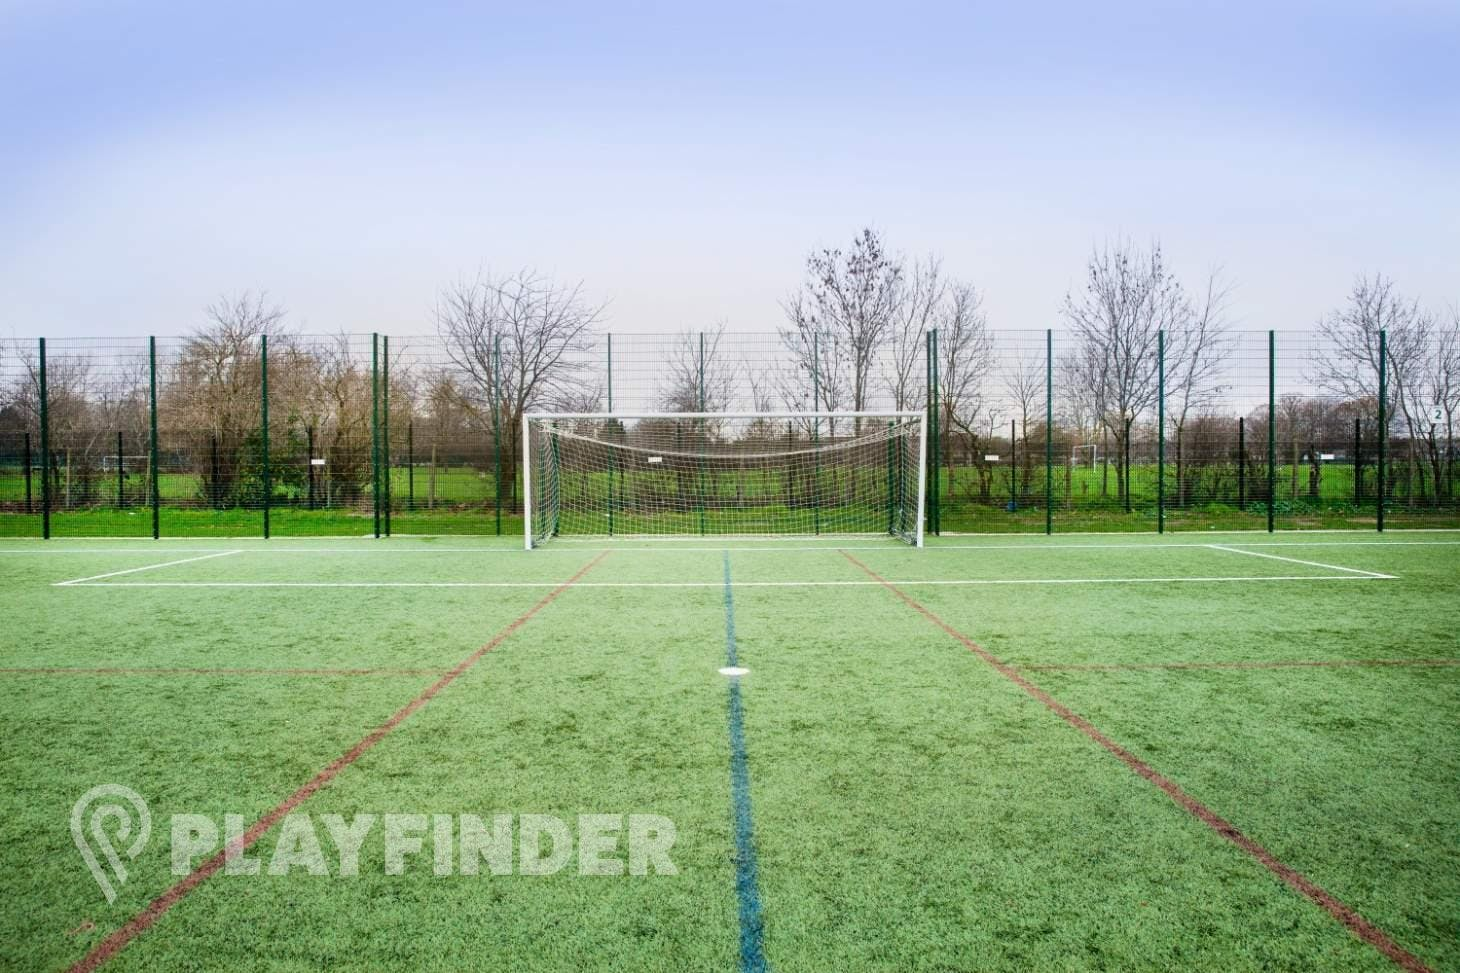 CONEL Sports Facilities 11 a side | 3G Astroturf football pitch